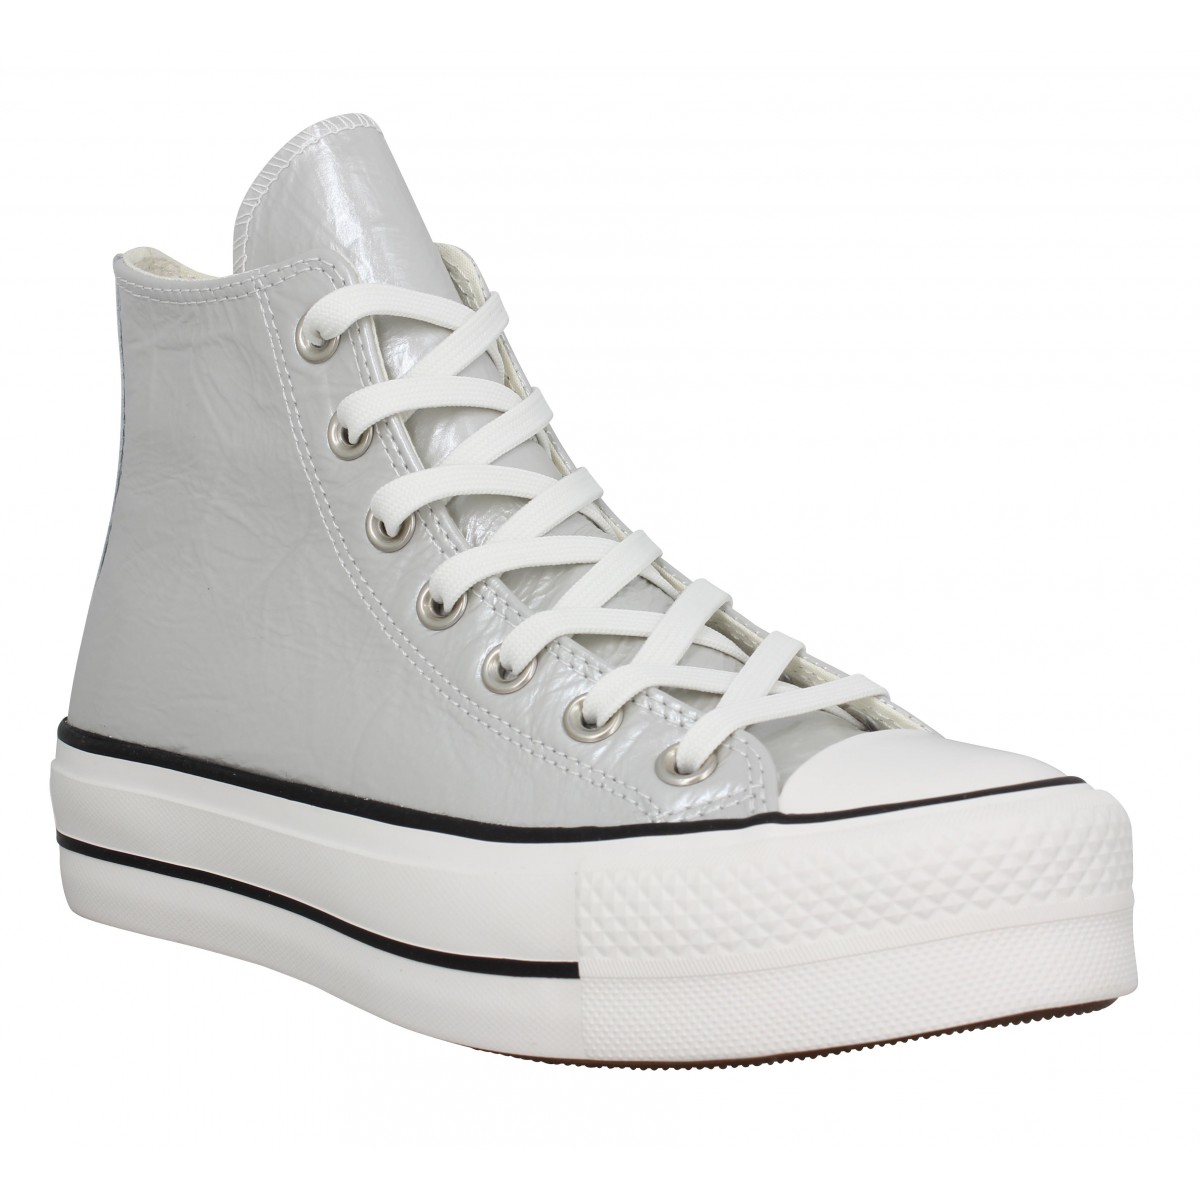 chaussures converse grise femme